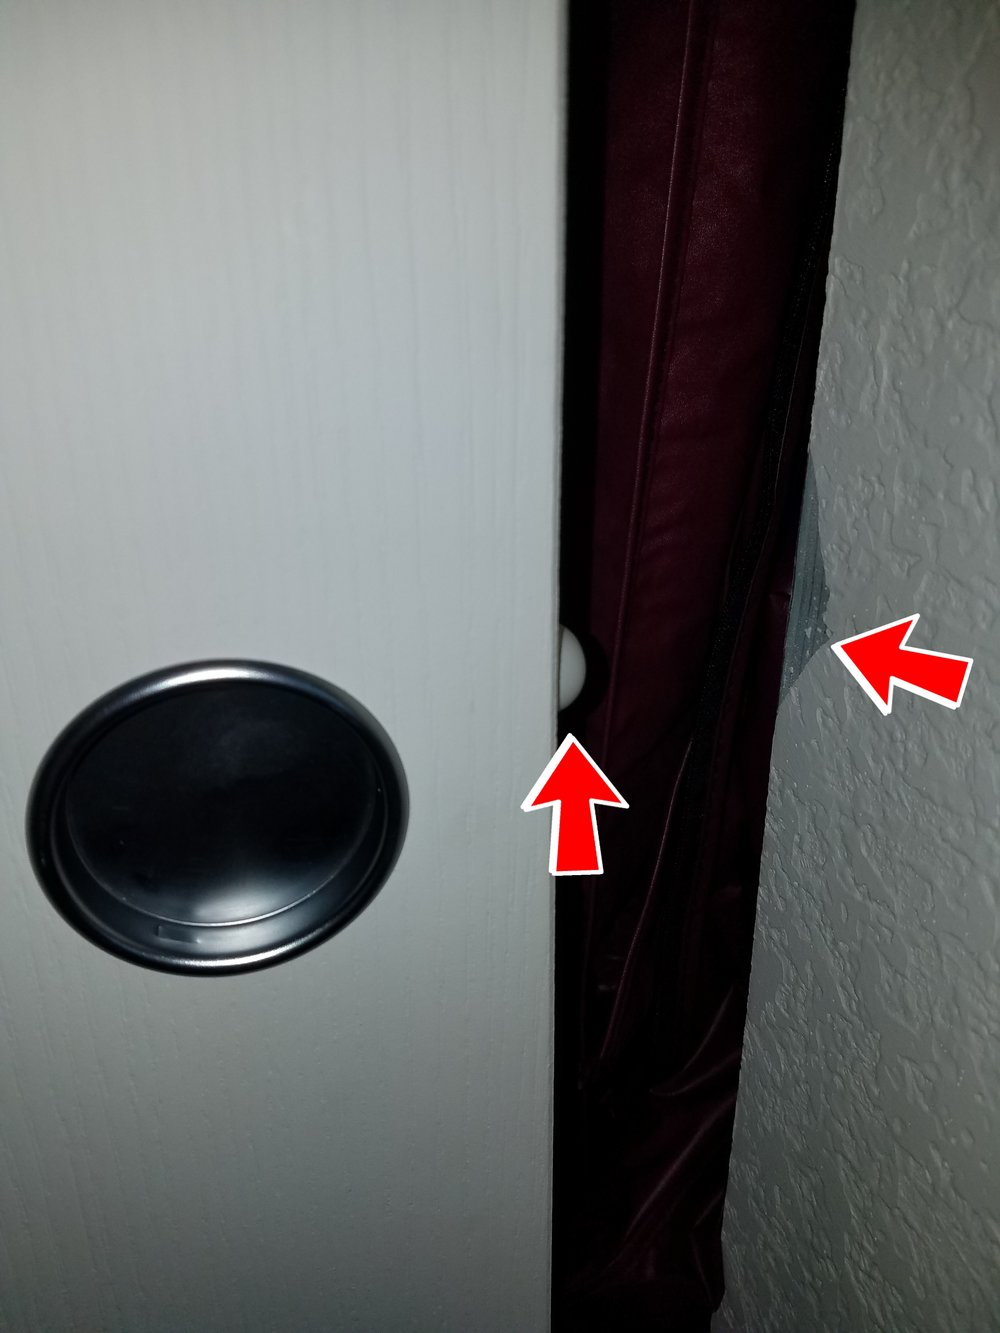 Sliding closet door bumpers are one of the worst ideas ever. Your closet doors might close quieter, but now your patching holes in the walls.